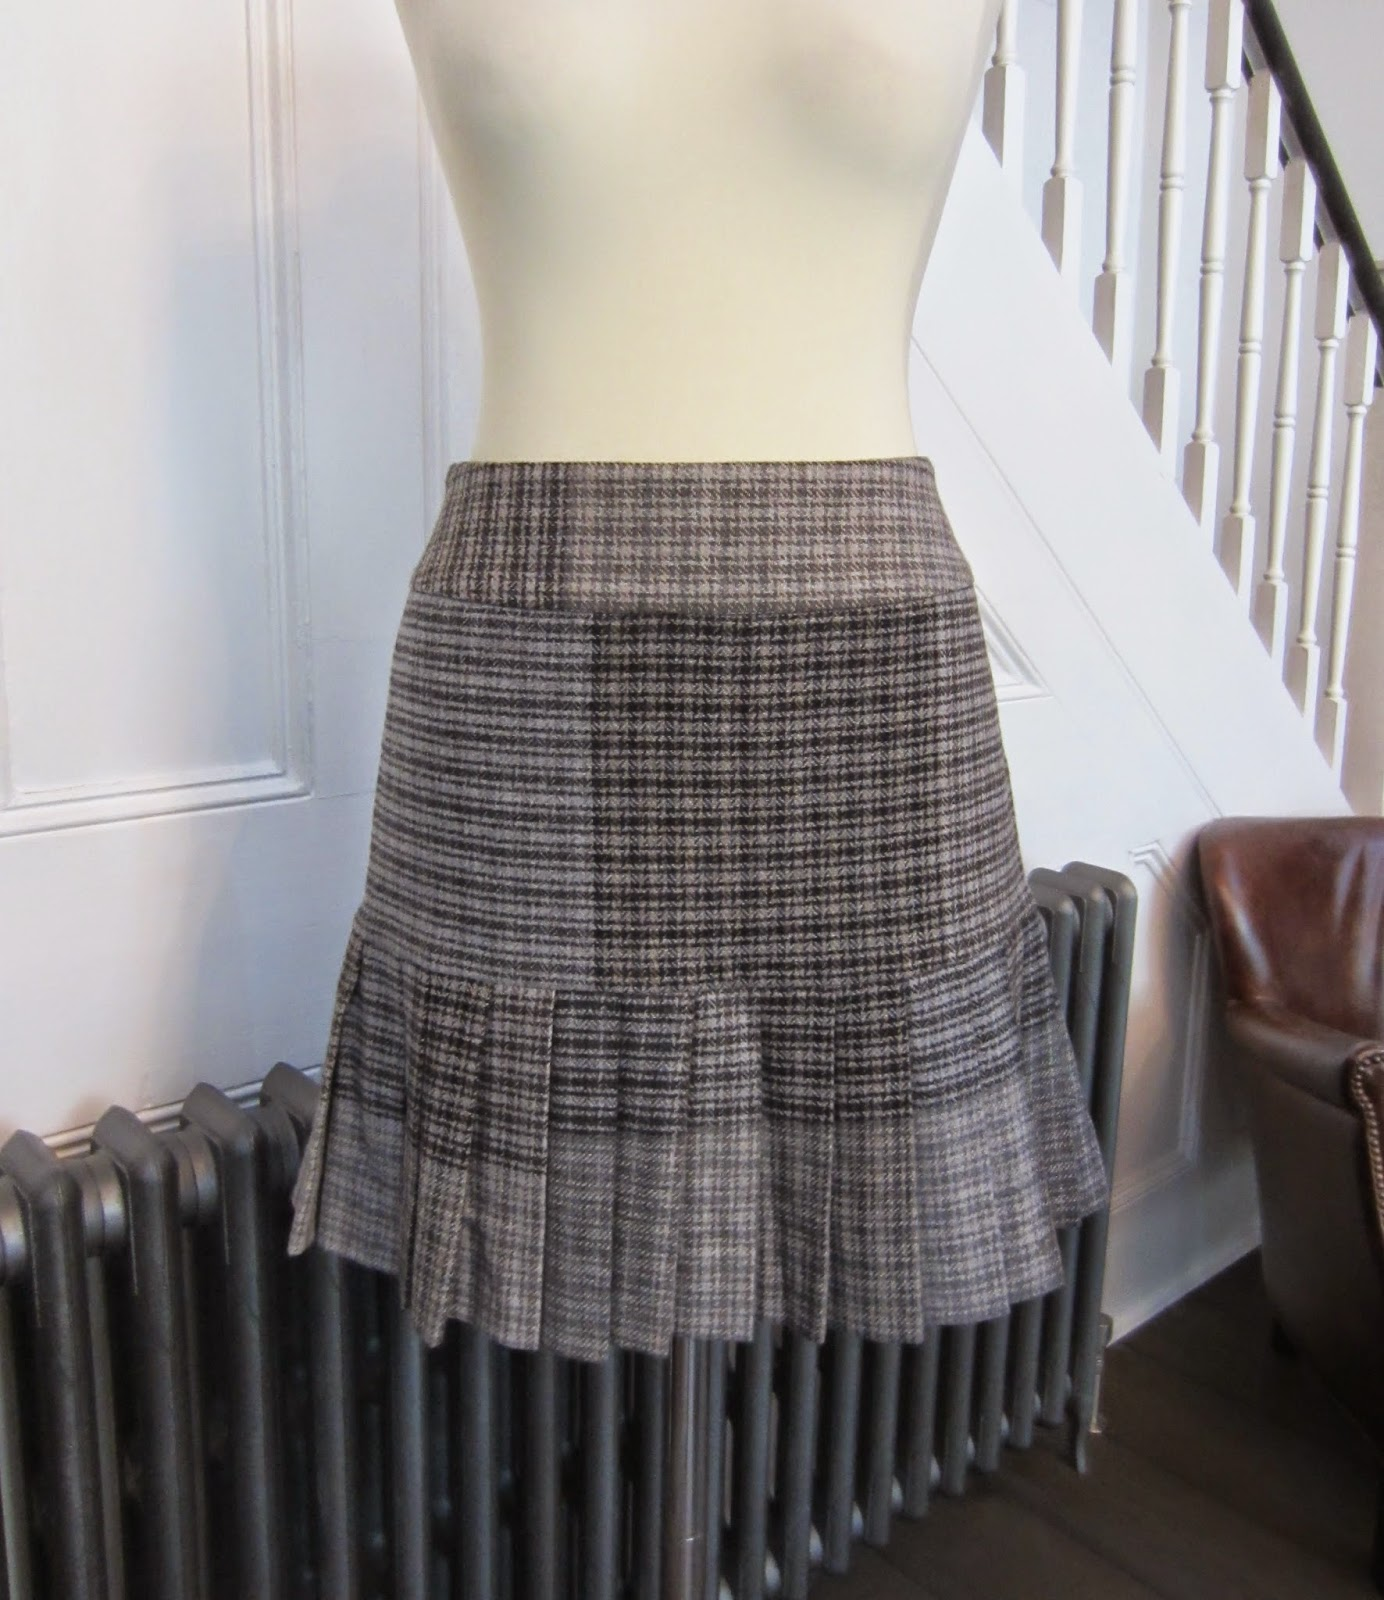 Vivienne Westwood Red Label Black/Grey/White Checked Wool Skirt